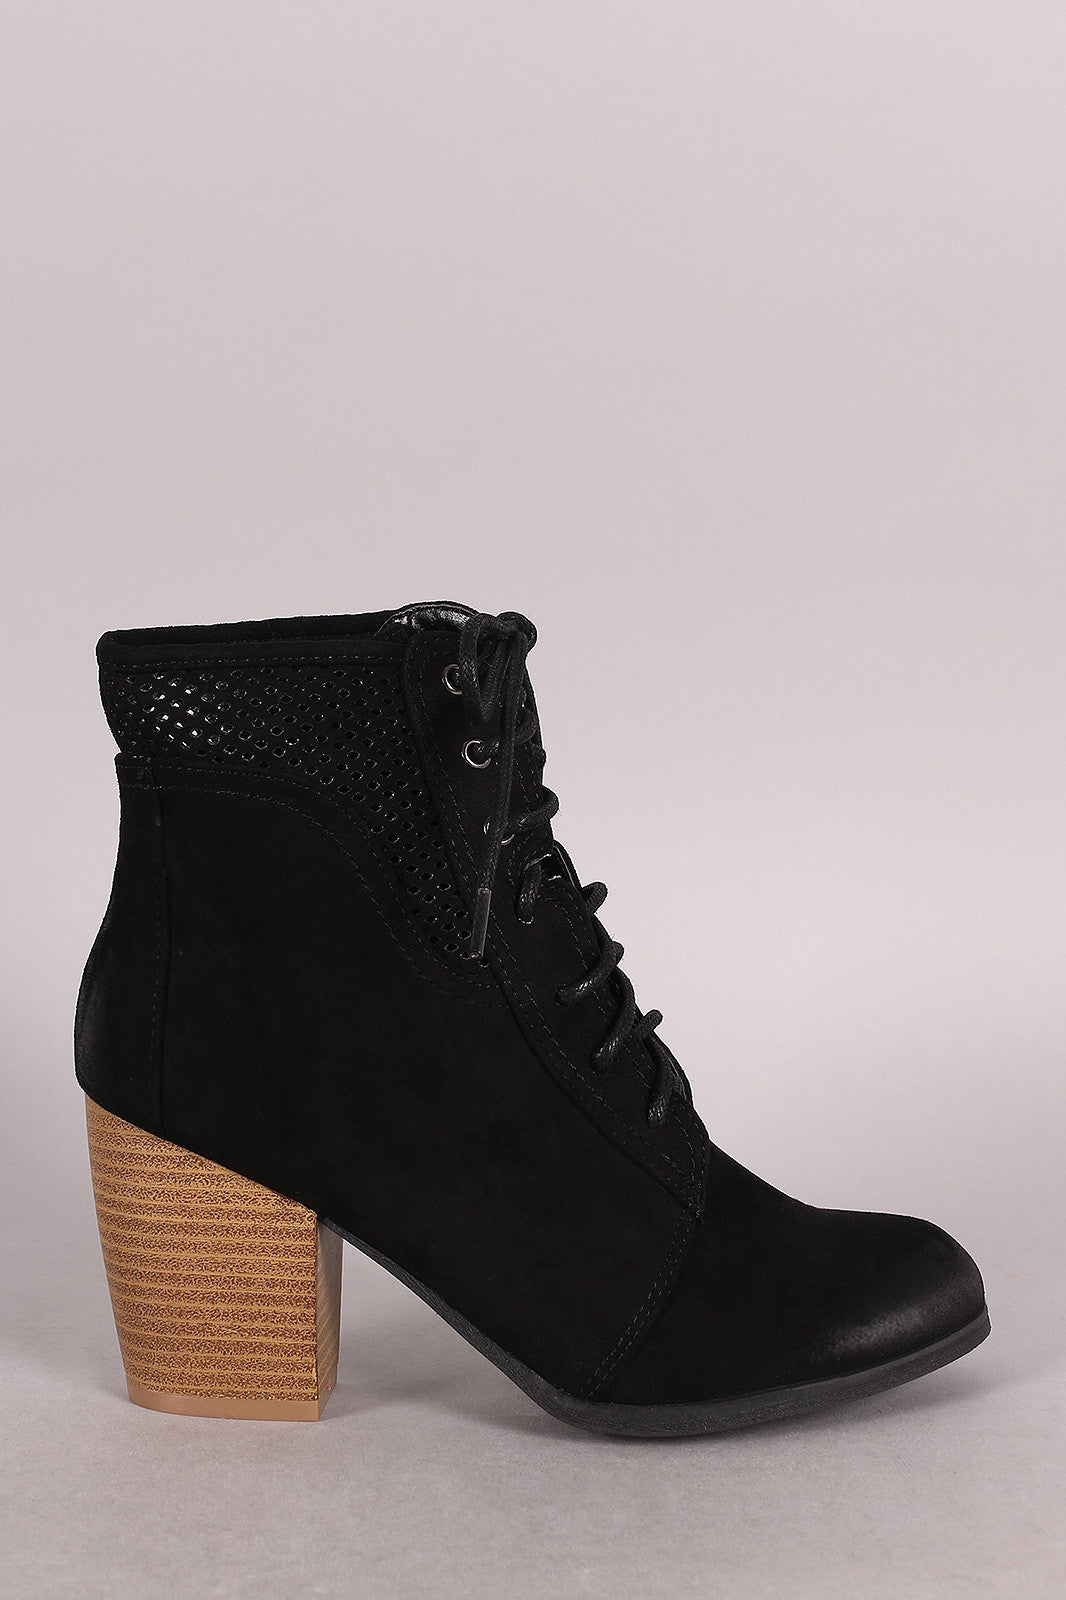 Qupid Spring Perforated Combat Booties - Thick 'N' Curvy Shop - 2